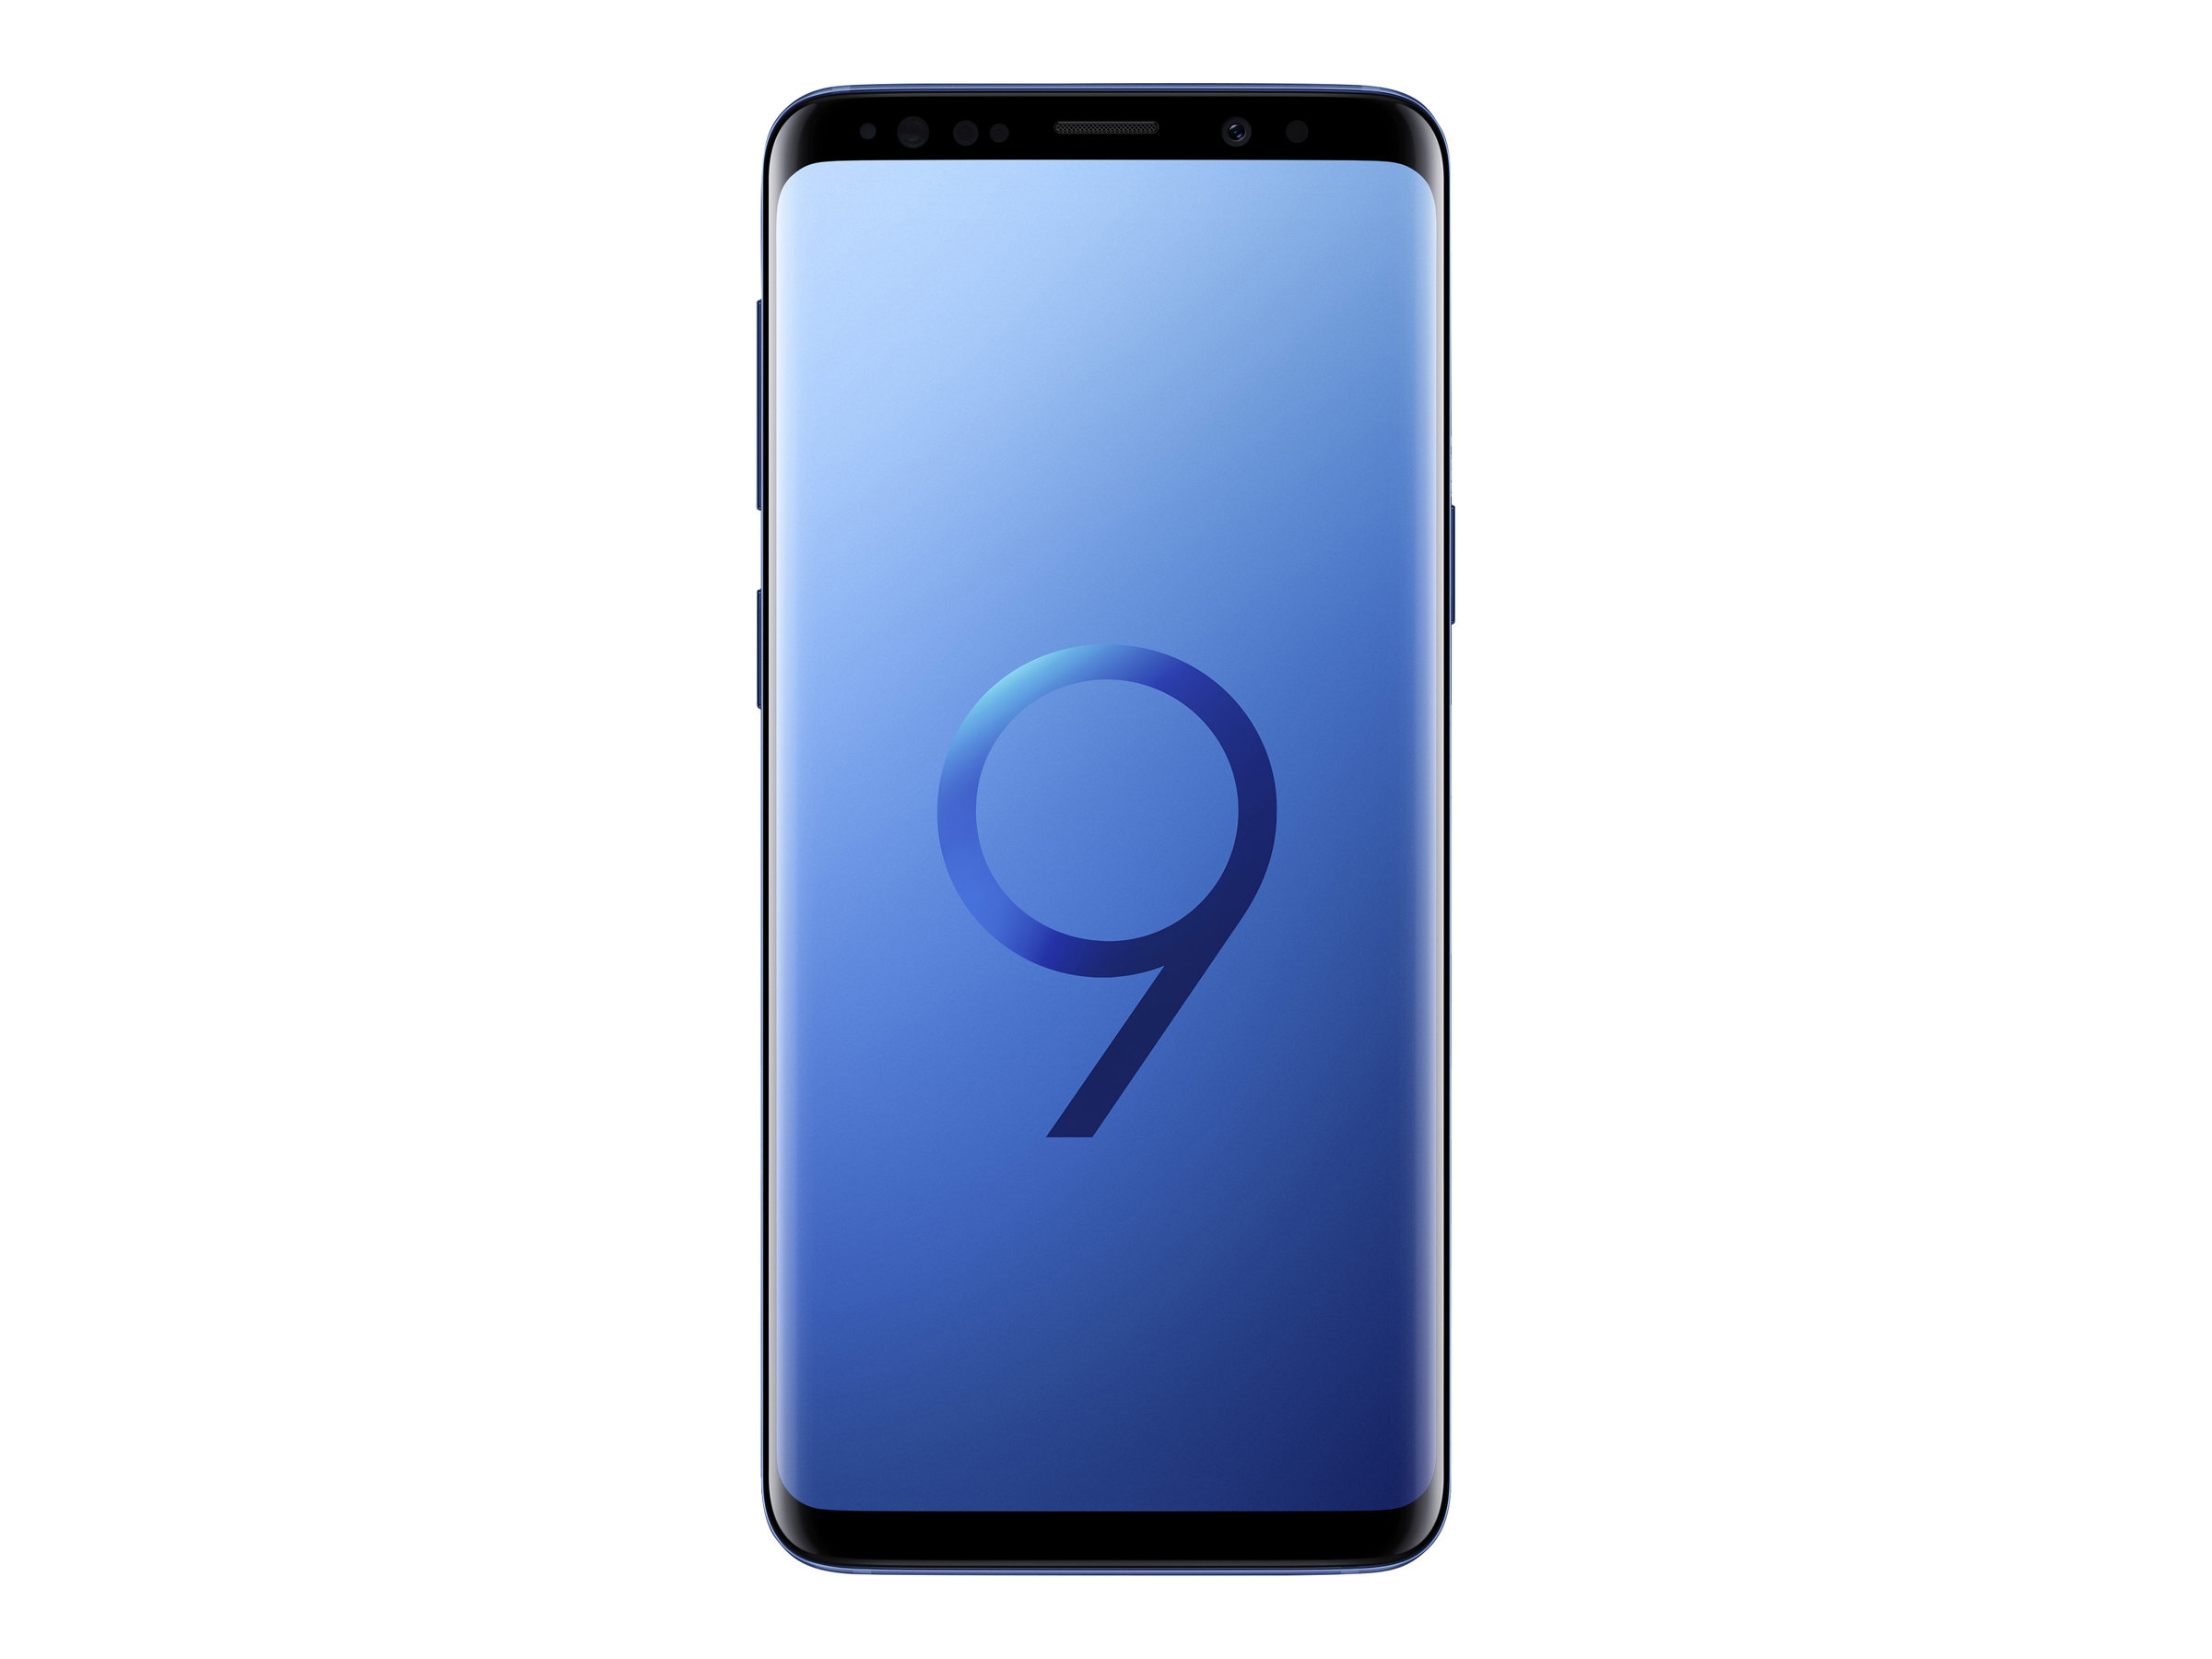 Samsung Galaxy S9 - DUOS - 12 MP 64 GB - Blau